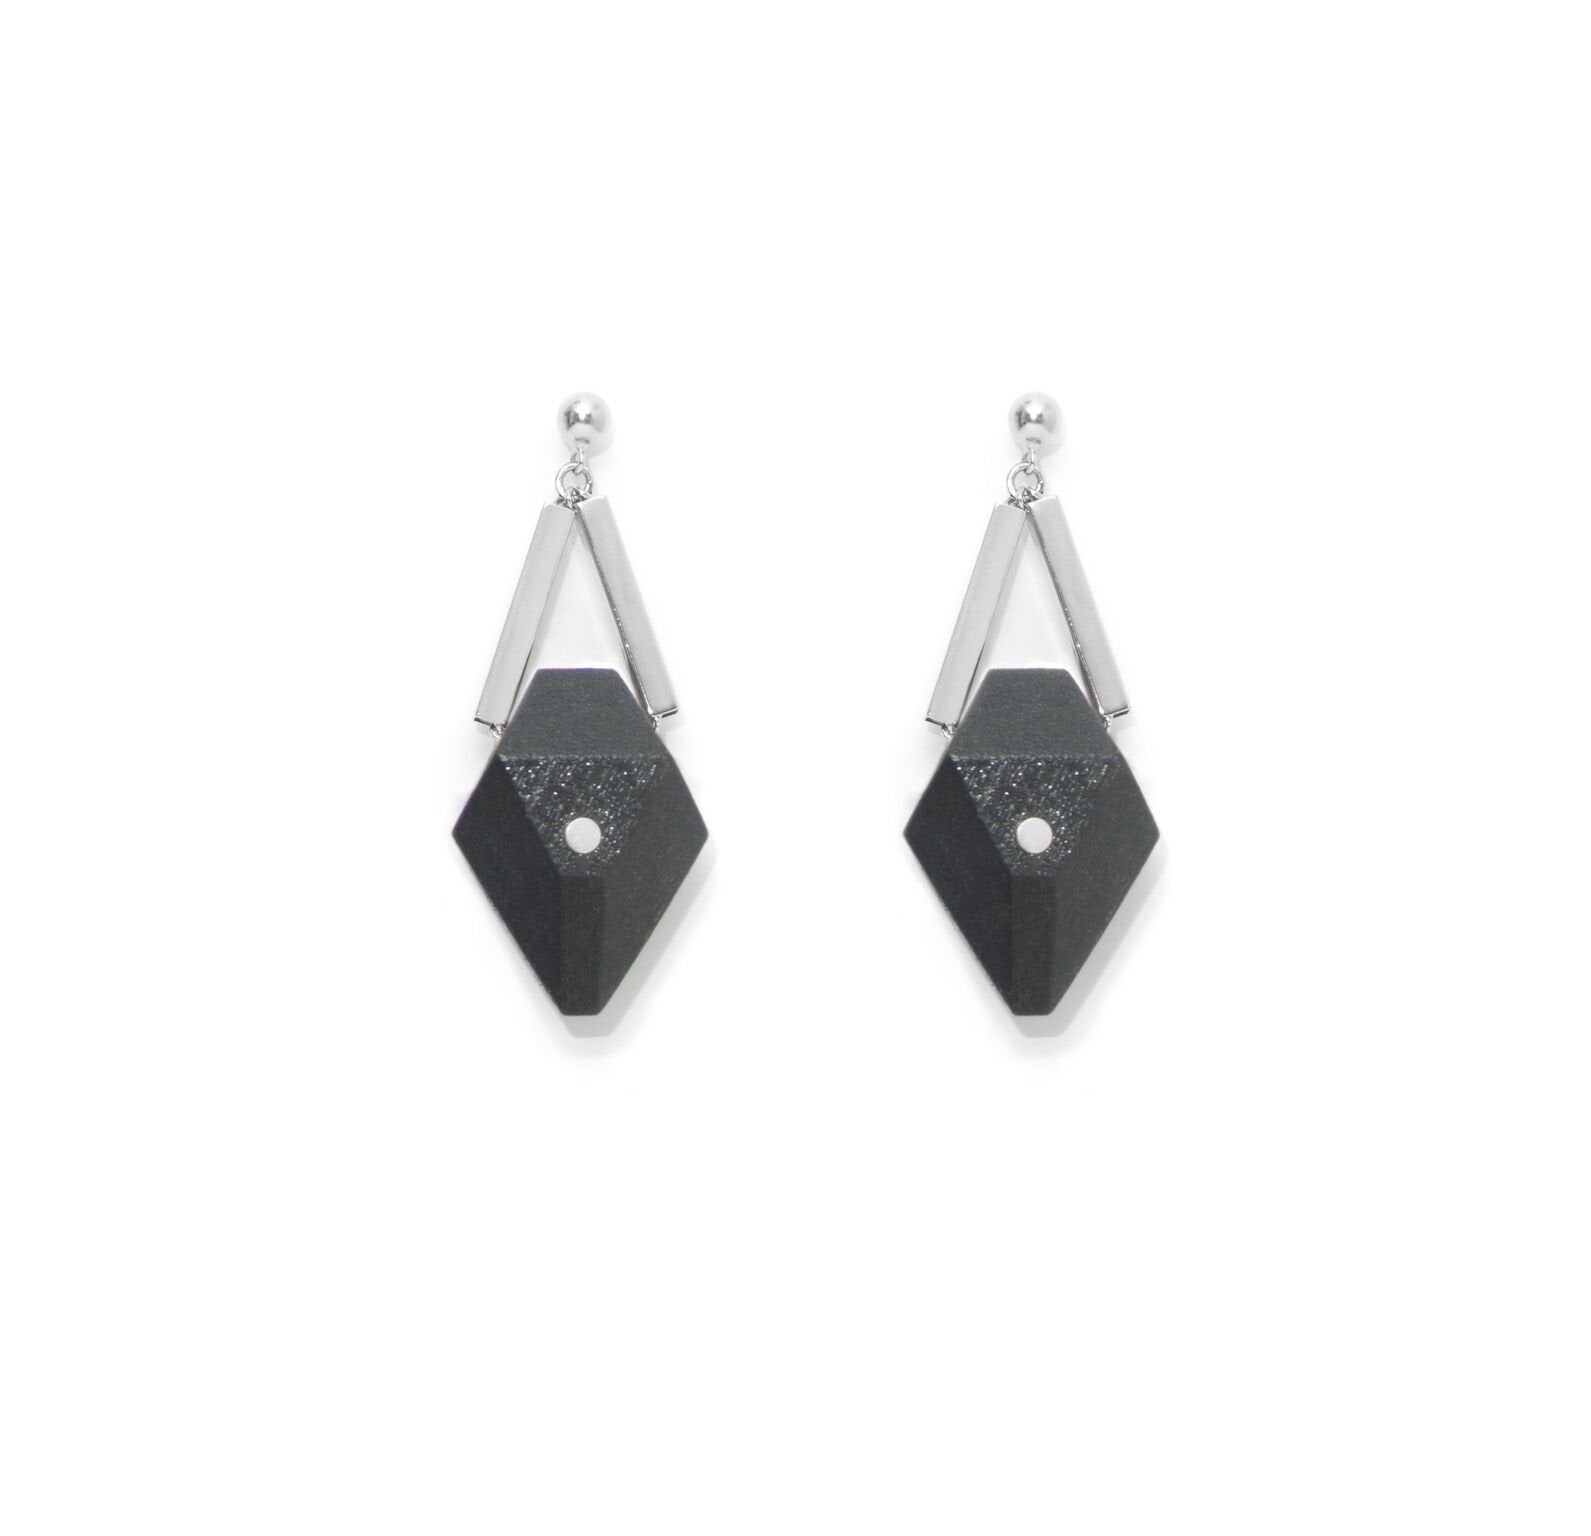 Pin Black Silver Earrings - The Clothing LoungeSalomé Charly